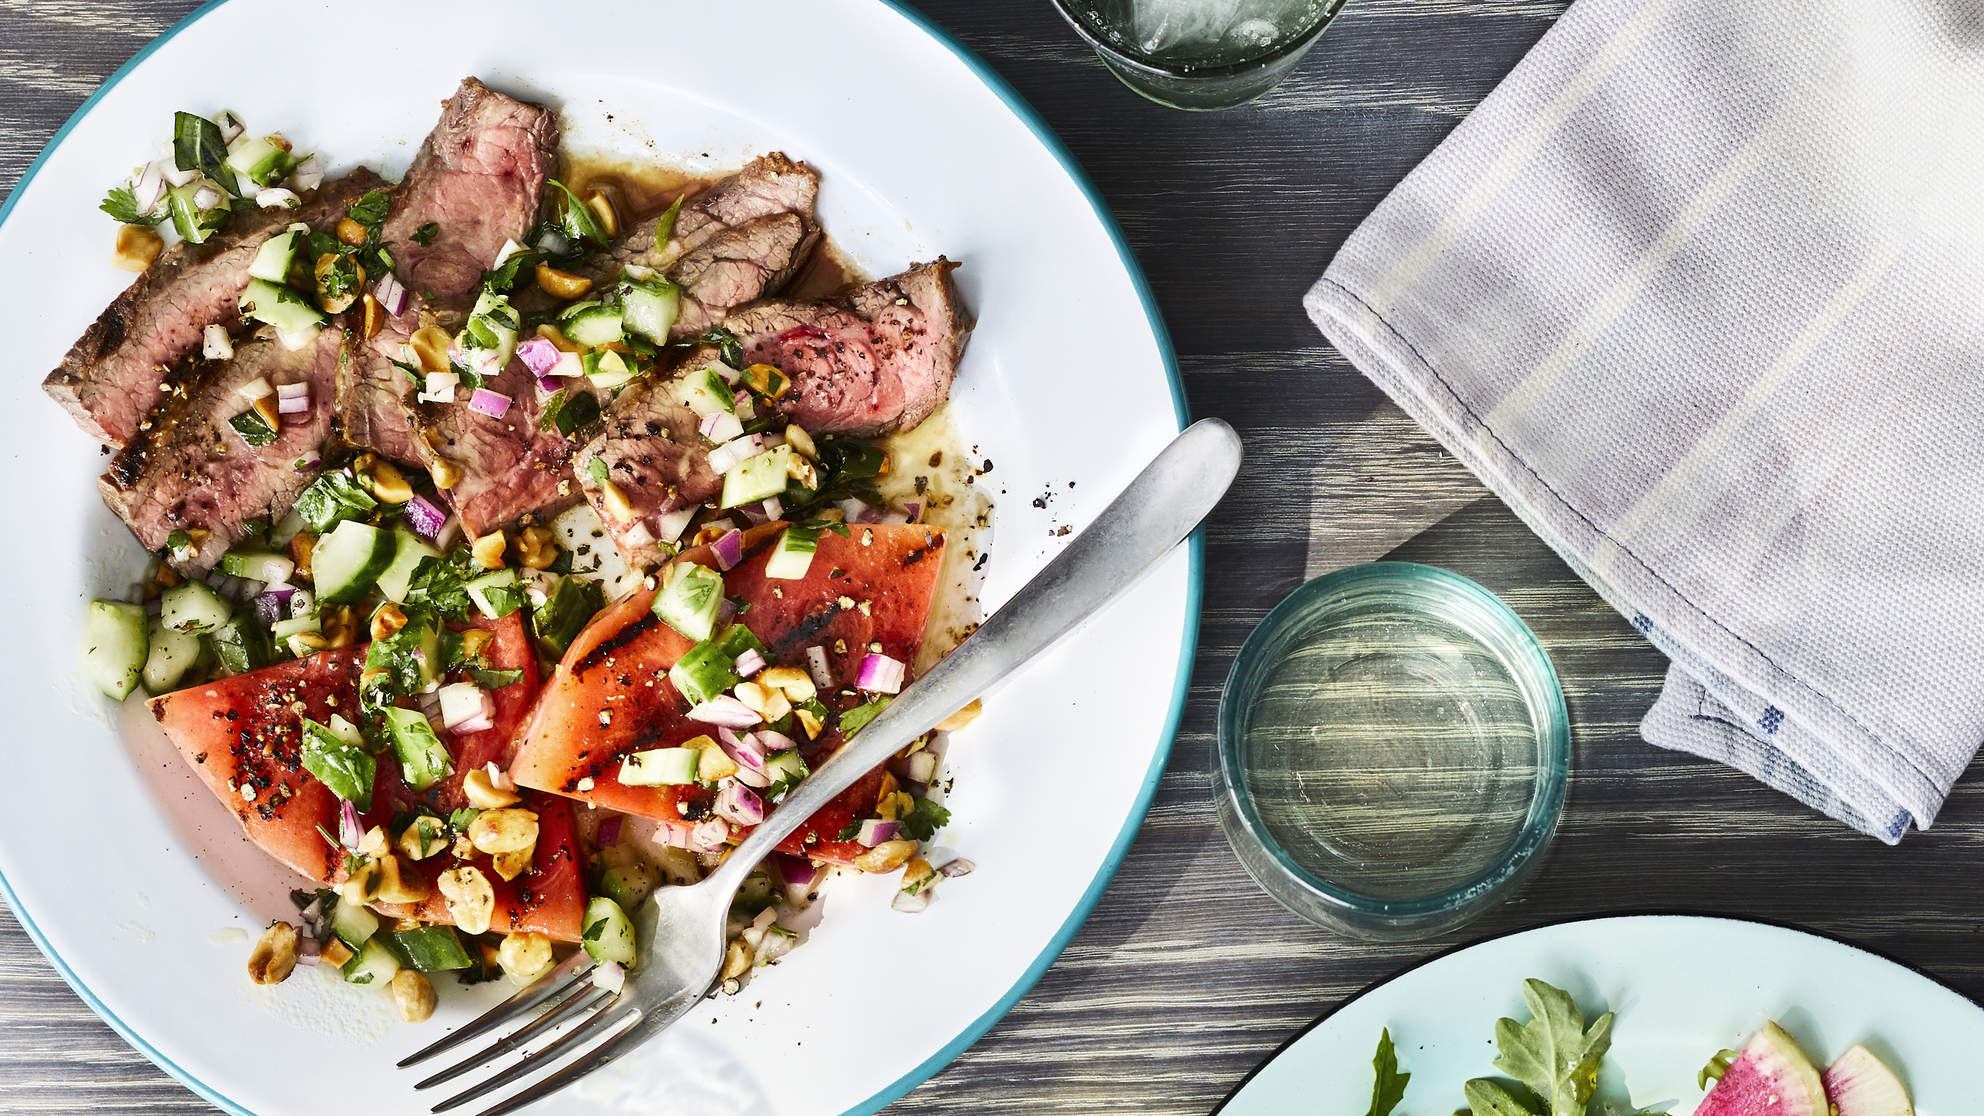 steak-watermelon-salad-health-summer-2019